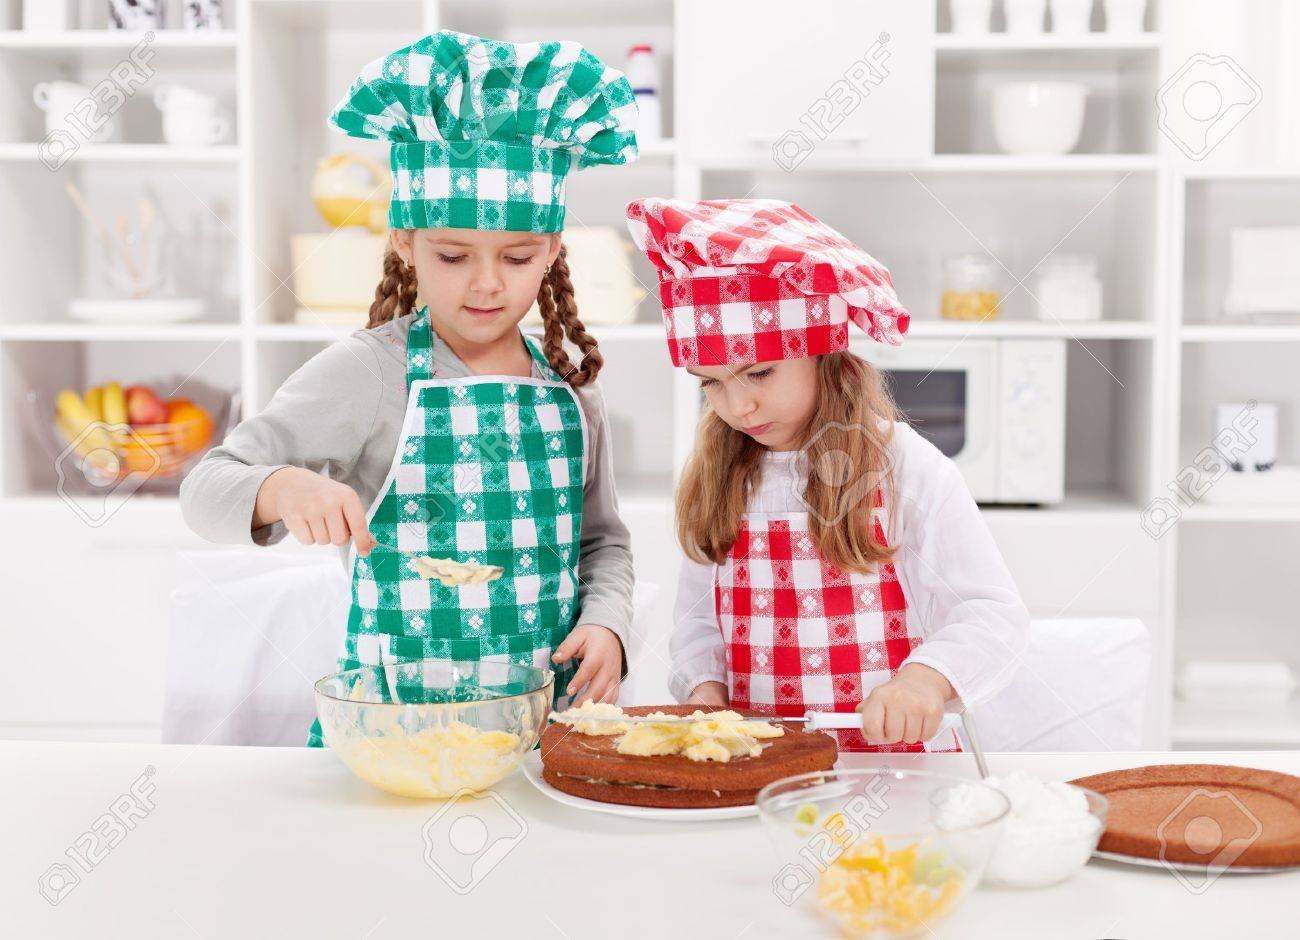 Little girls with chef hats preparing a cake in the kitchen Stock Photo - 18494350